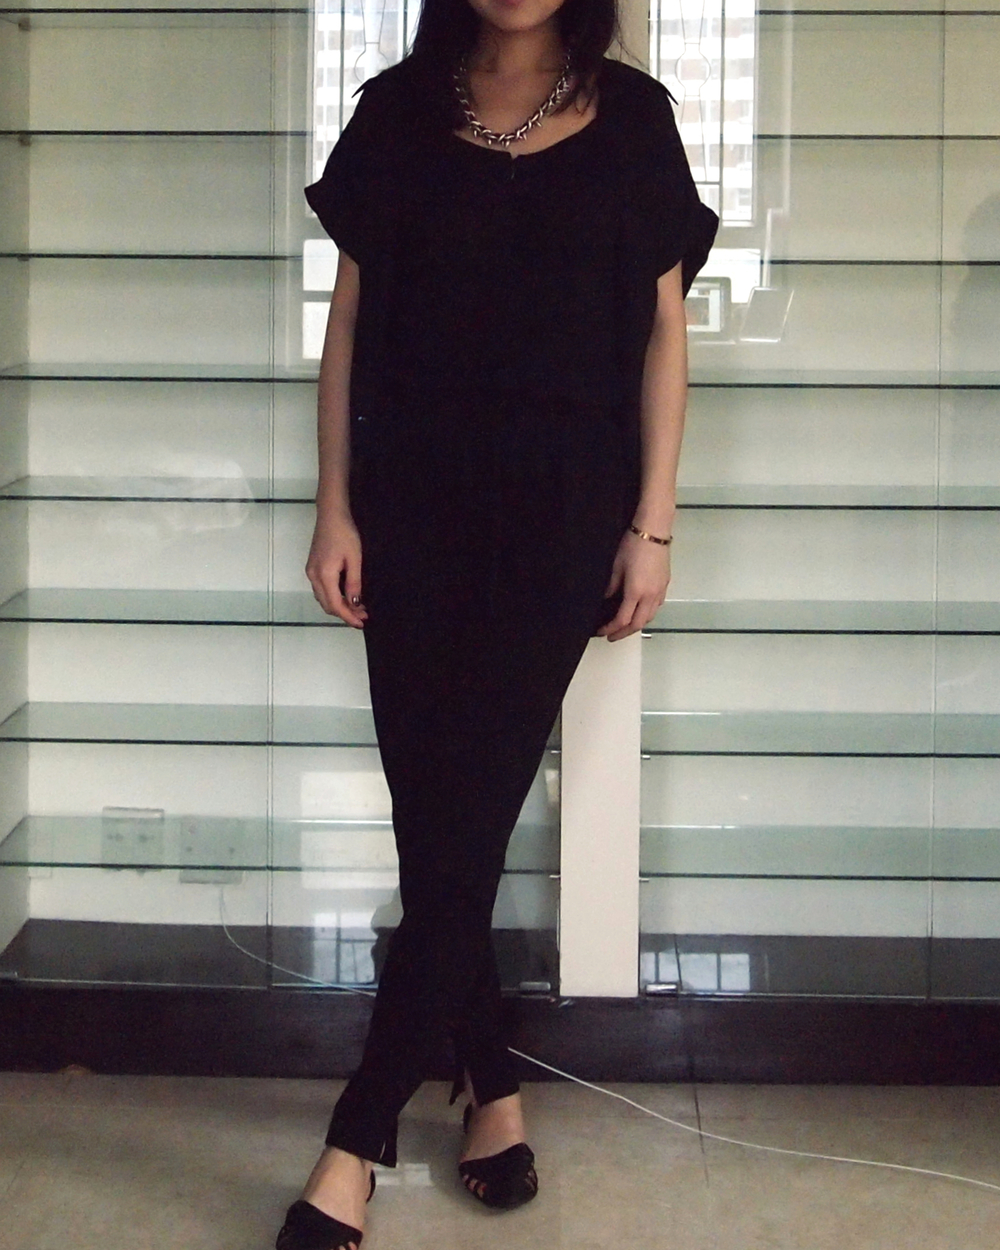 Zara Necklace and Jumpsuit, Forever 21 Collared Blouse and Flats